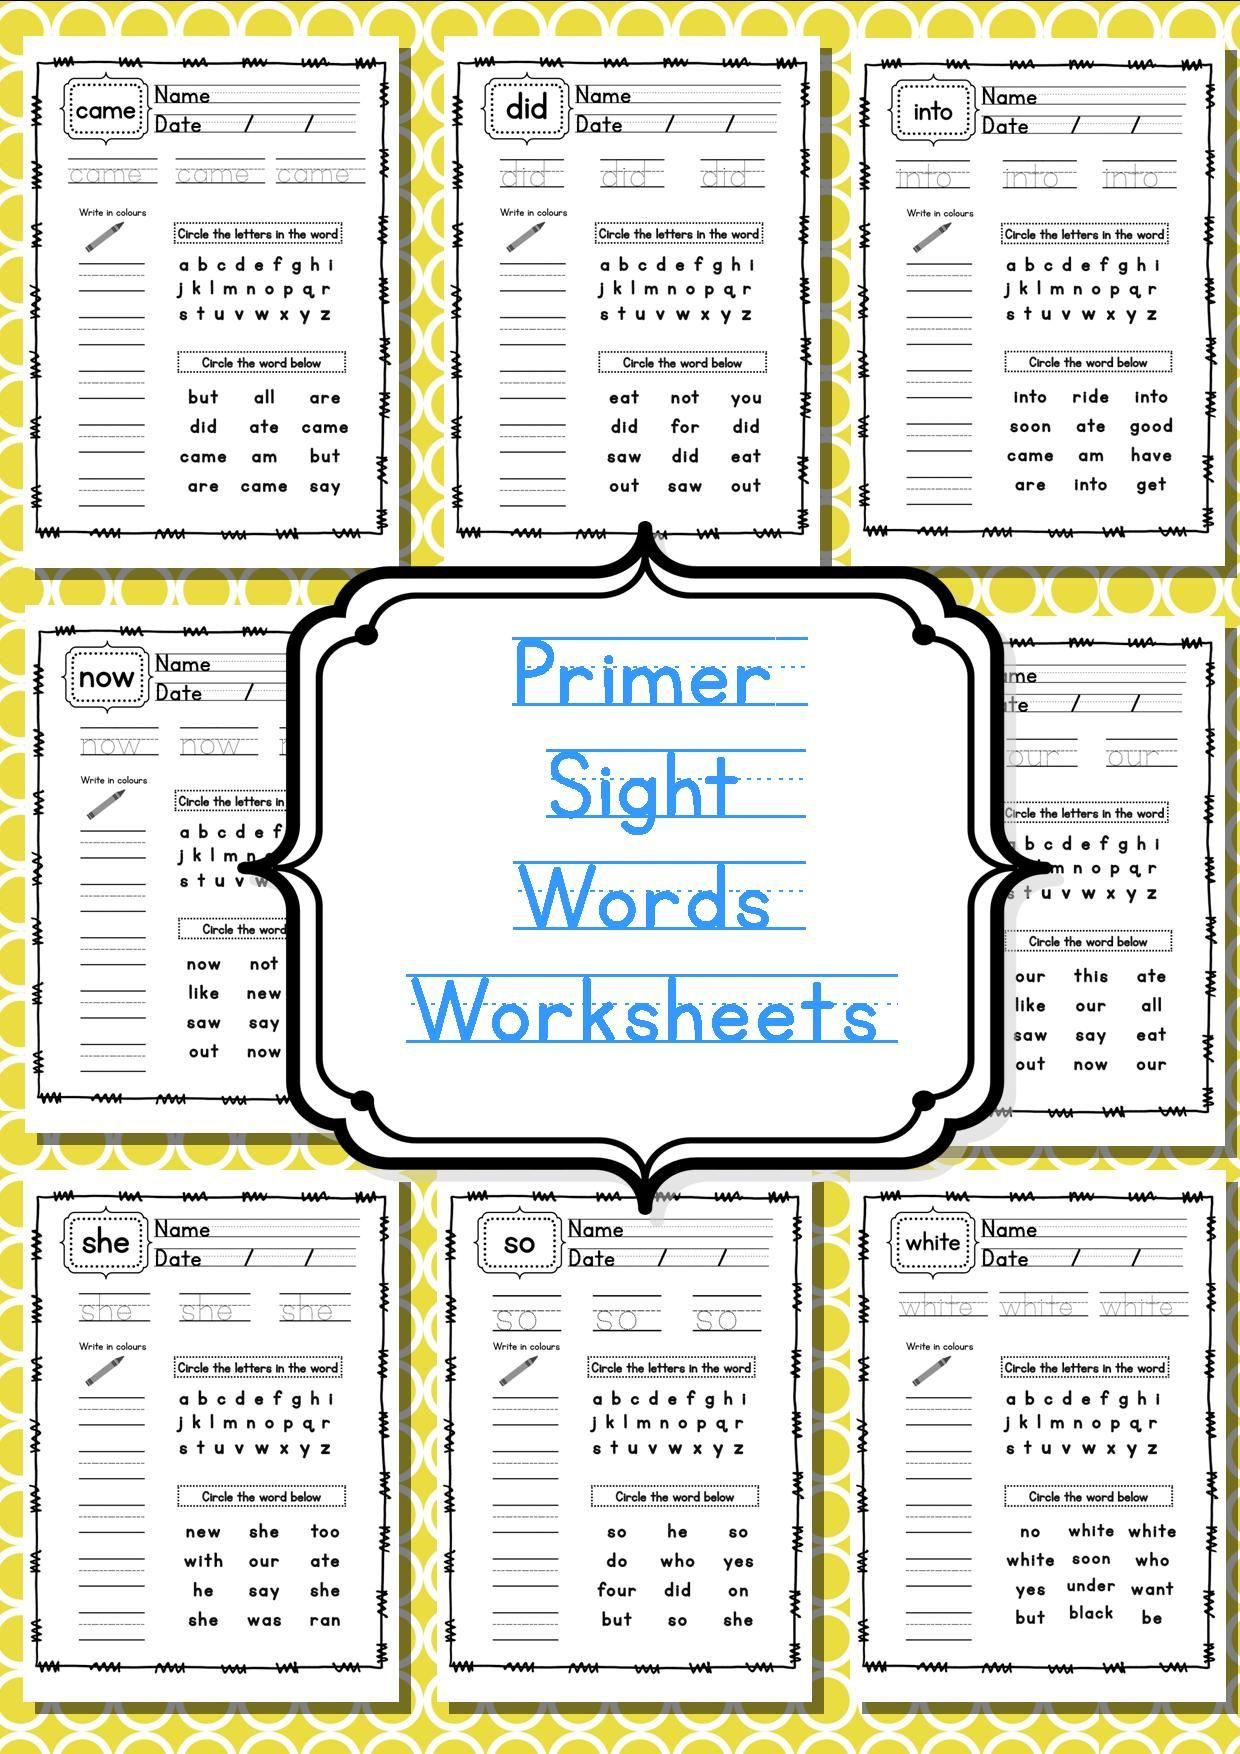 Primer Sight Word Worksheets Sight Word Worksheets Sight Words Kindergarten Kindergarten Worksheets Sight Words